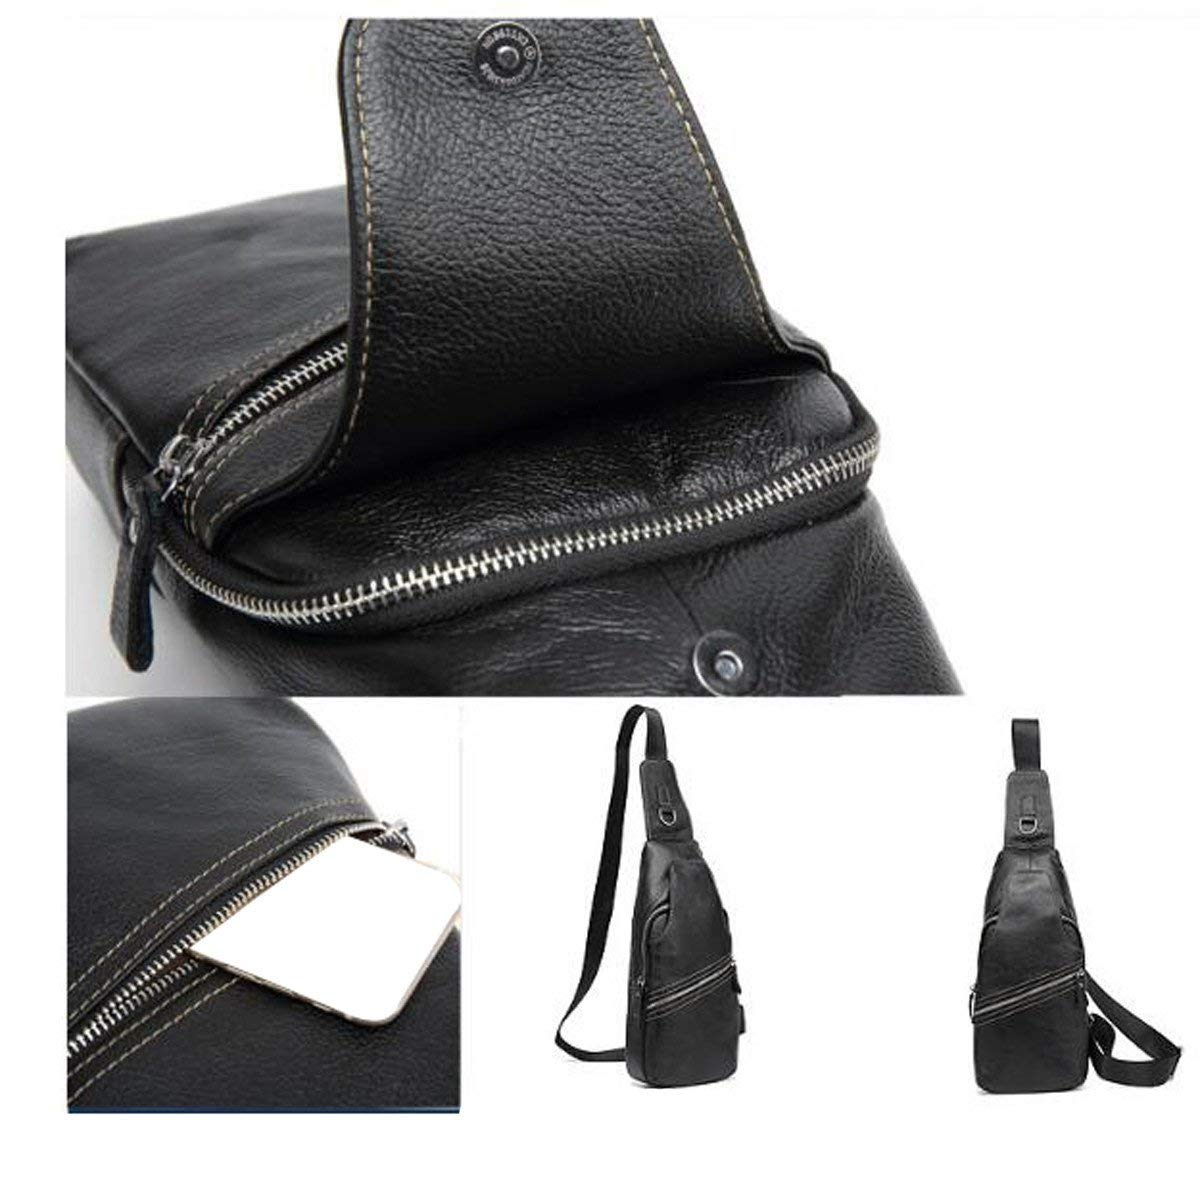 FYH Textured Fashion Casual Cool Crossover Bags Sack Satchel Black Handbag